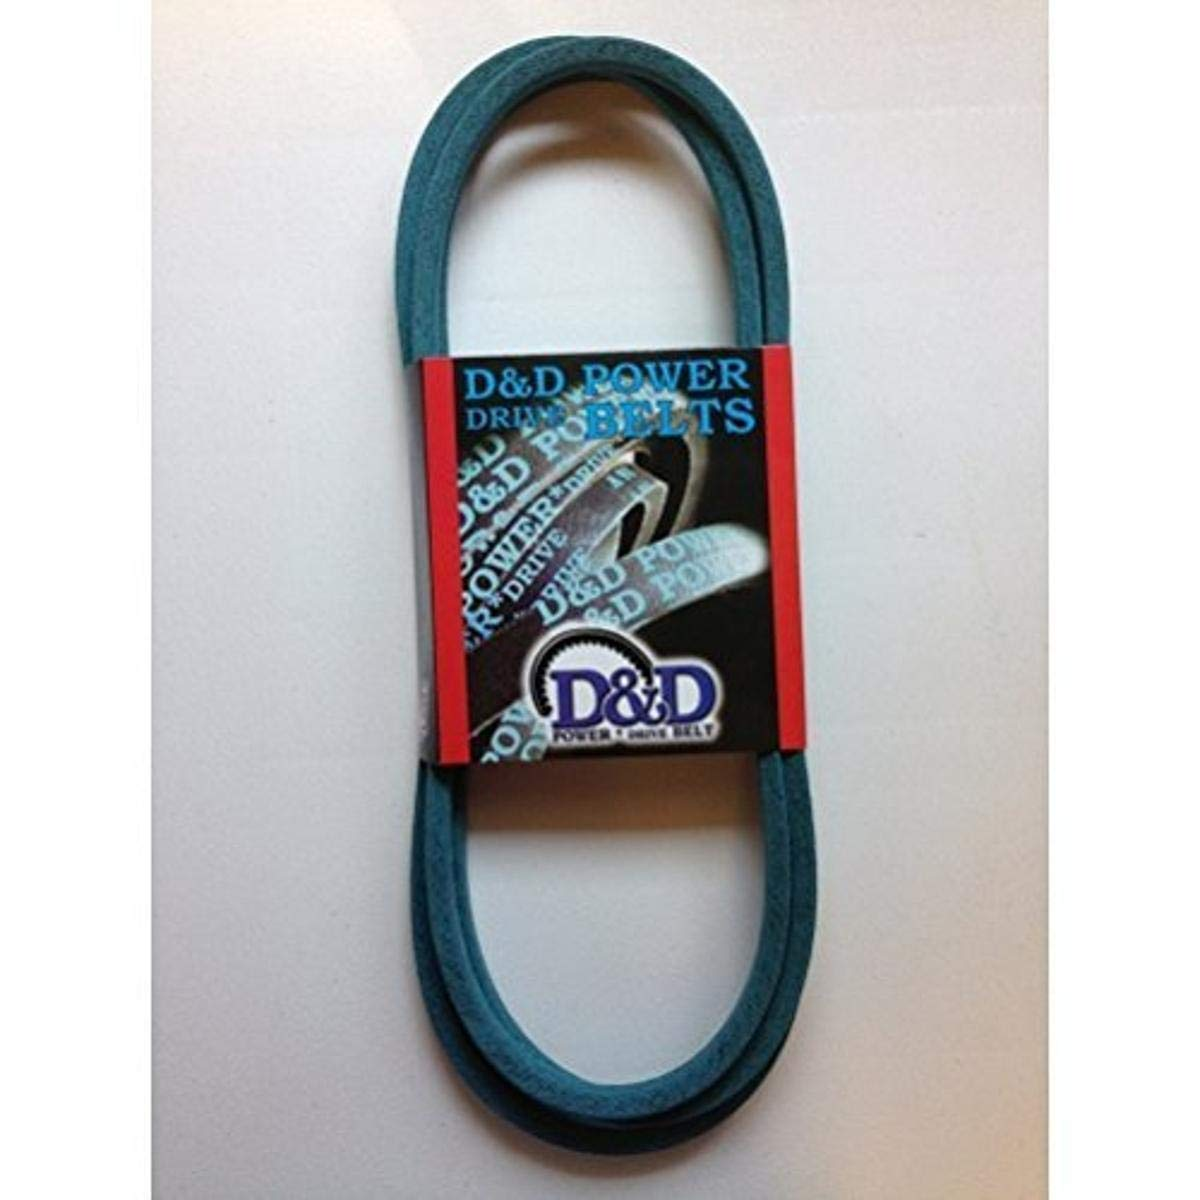 D&D PowerDrive 4460707 Tractor Supply Company Kevlar Replacement Belt, 1 Band, Aramid